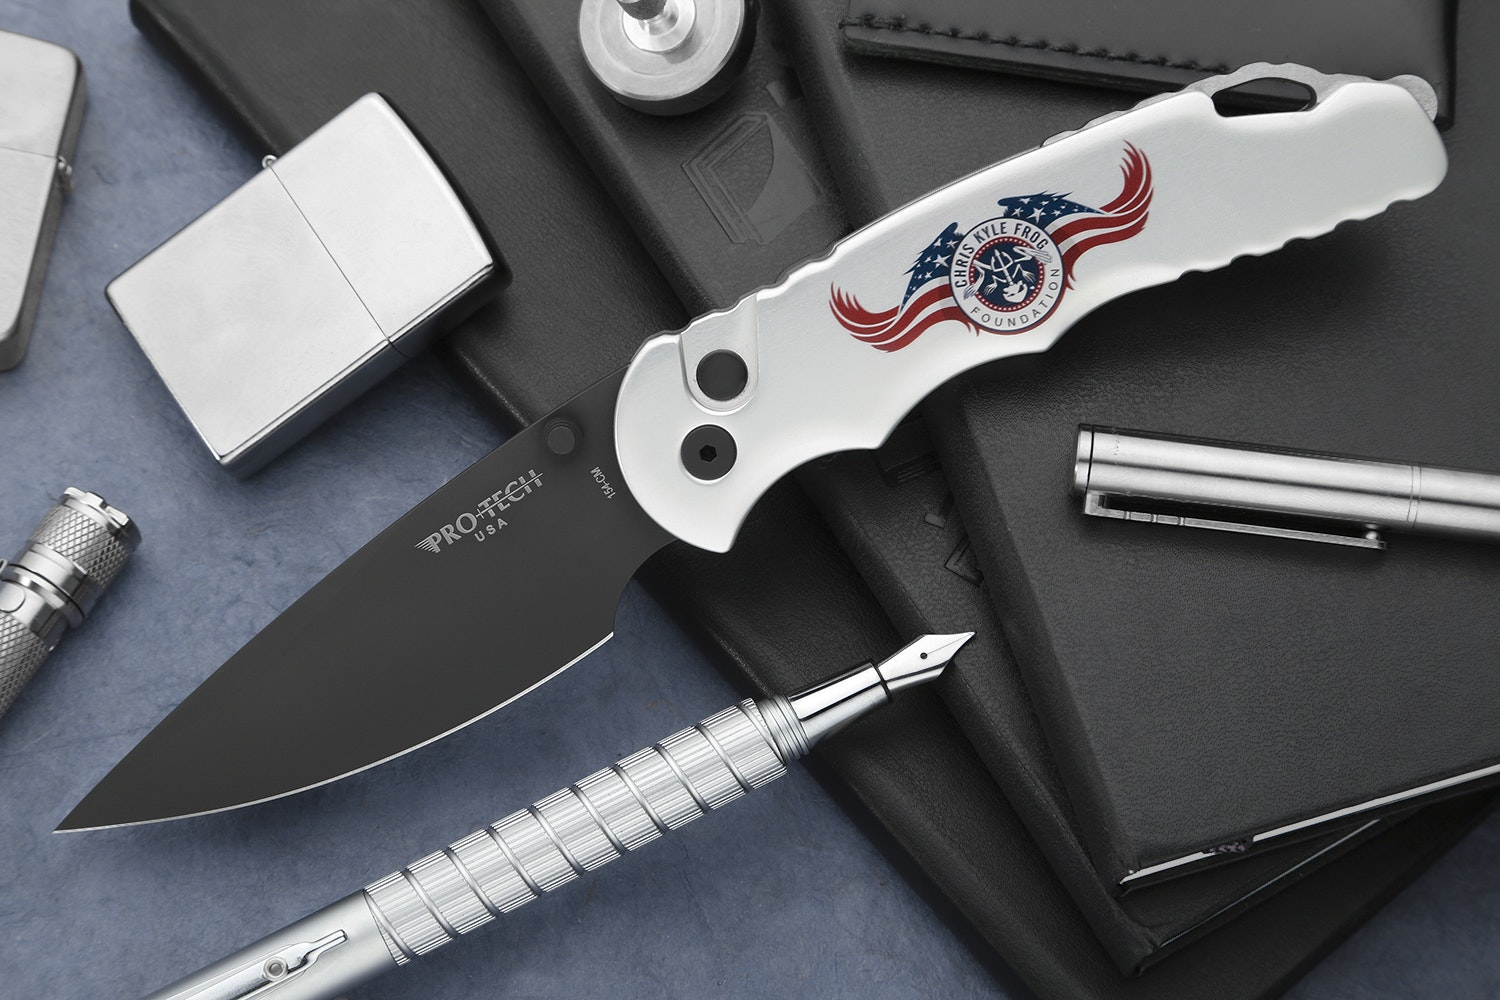 ProTech Knives TR-4 Chris Kyle Foundation